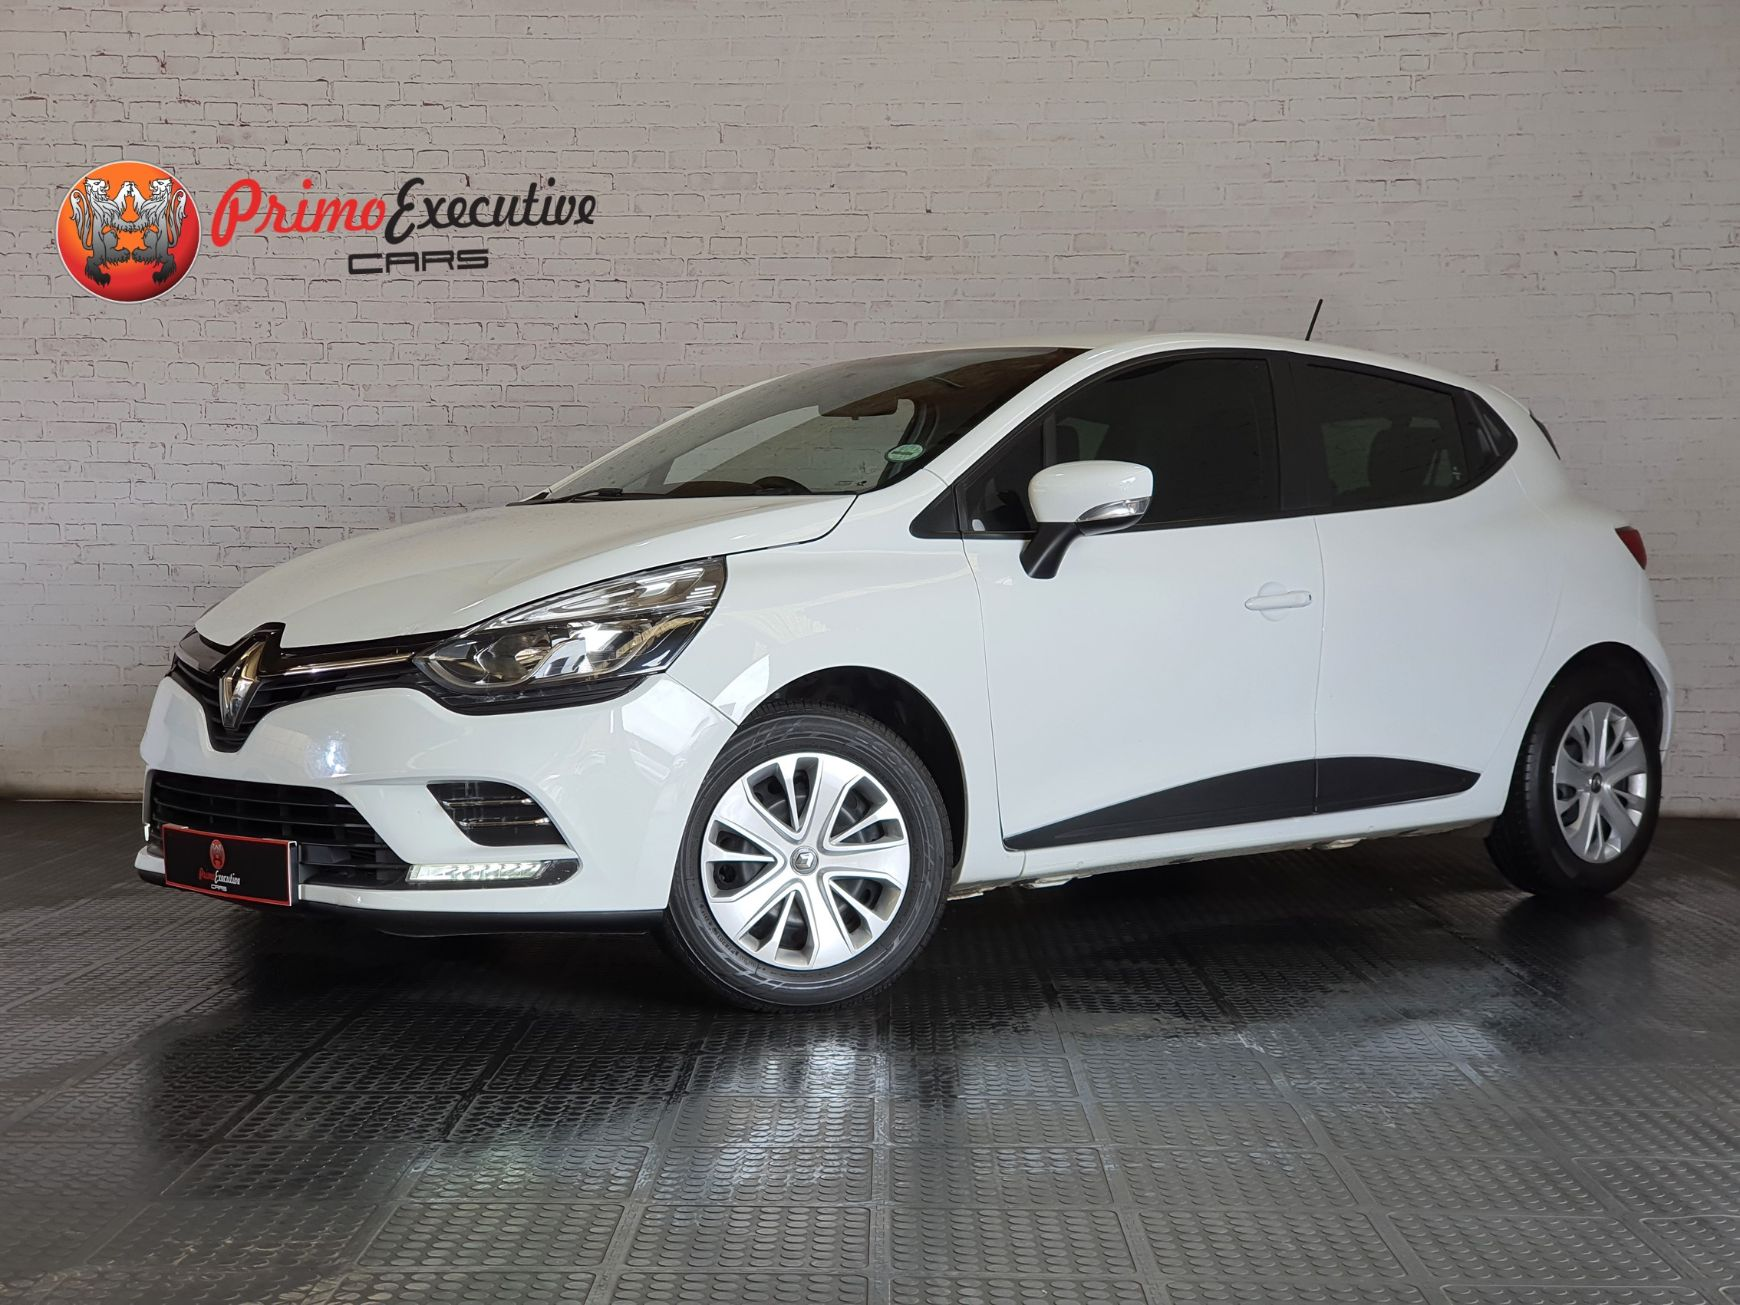 Renault Clio 66kW turbo Authentique